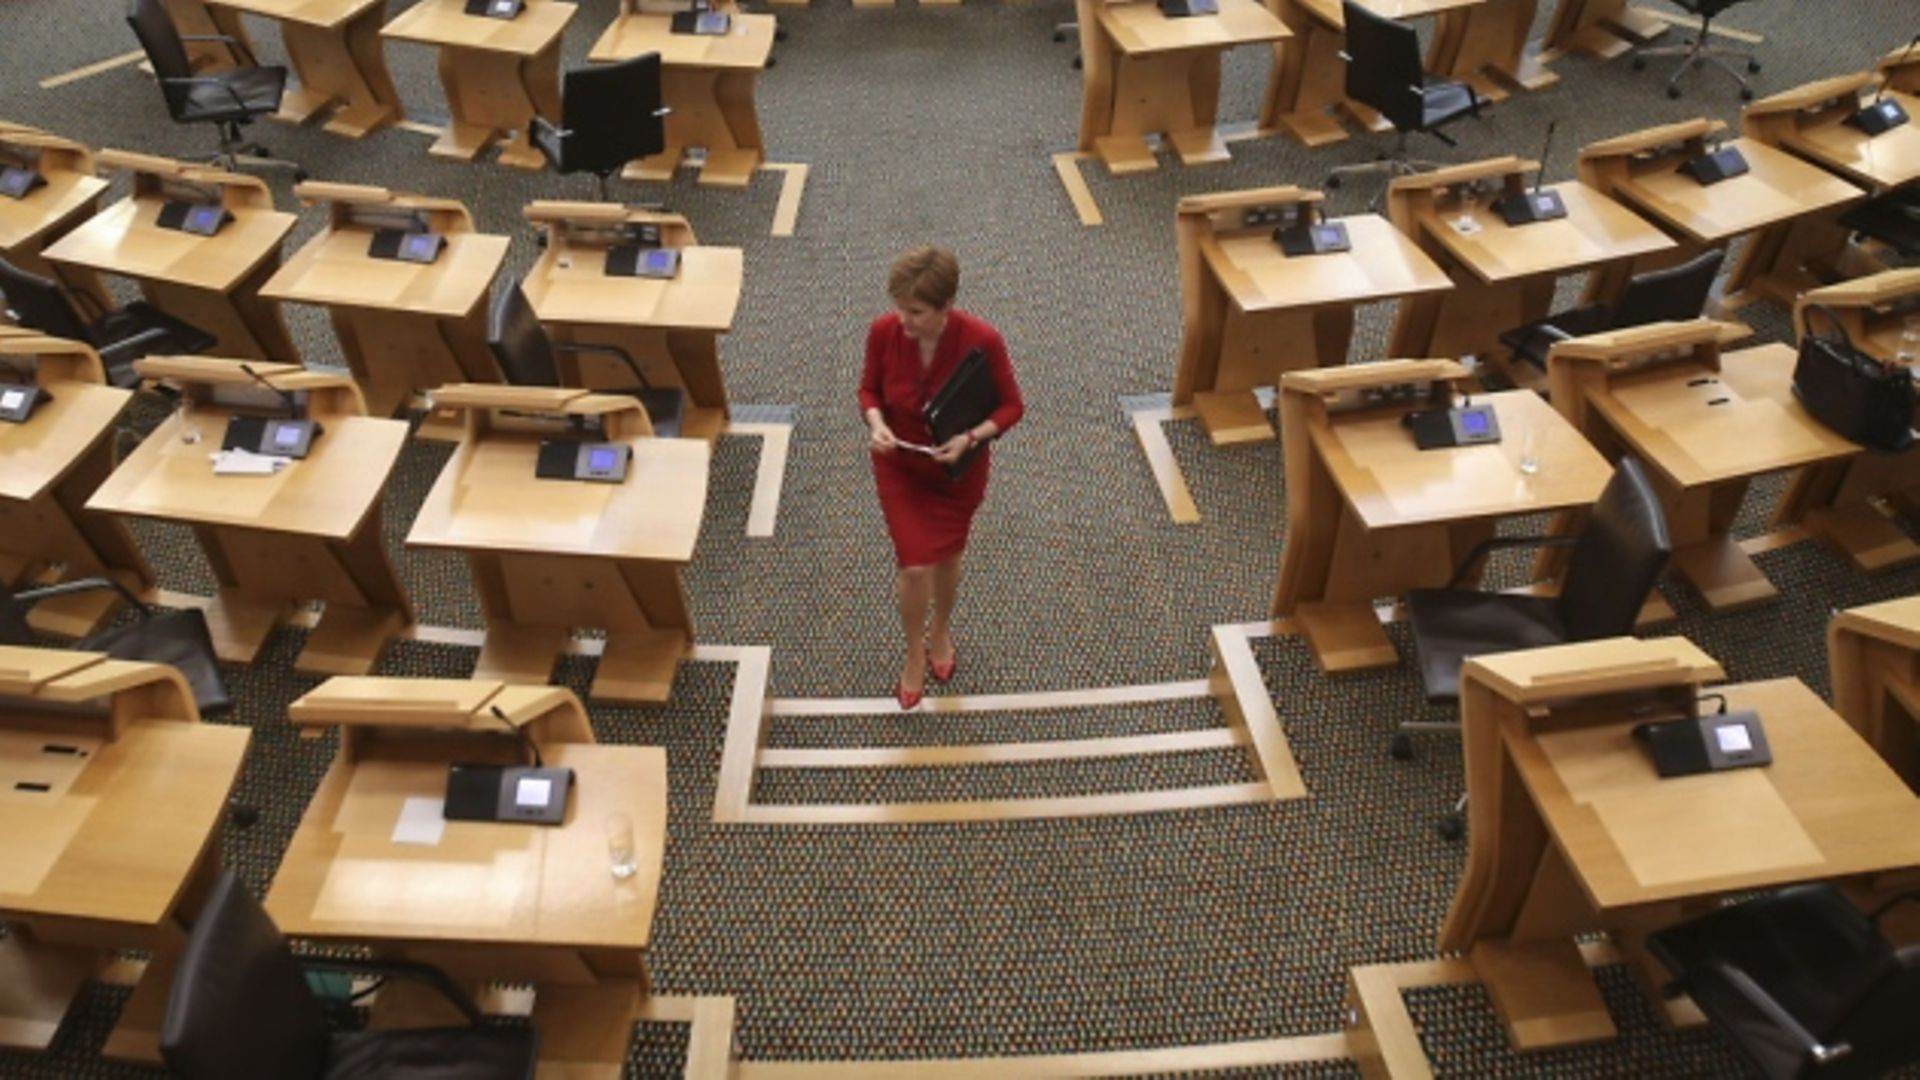 First Minister Nicola Sturgeon attends First Minister's Questions at the Scottish Parliament Holyrood on August 26, 2020 in Edinburgh, Scotland. (Photo by Fraser Bremner - Pool/Getty Images) - Credit: Fraser Bremner - Pool/Getty Images